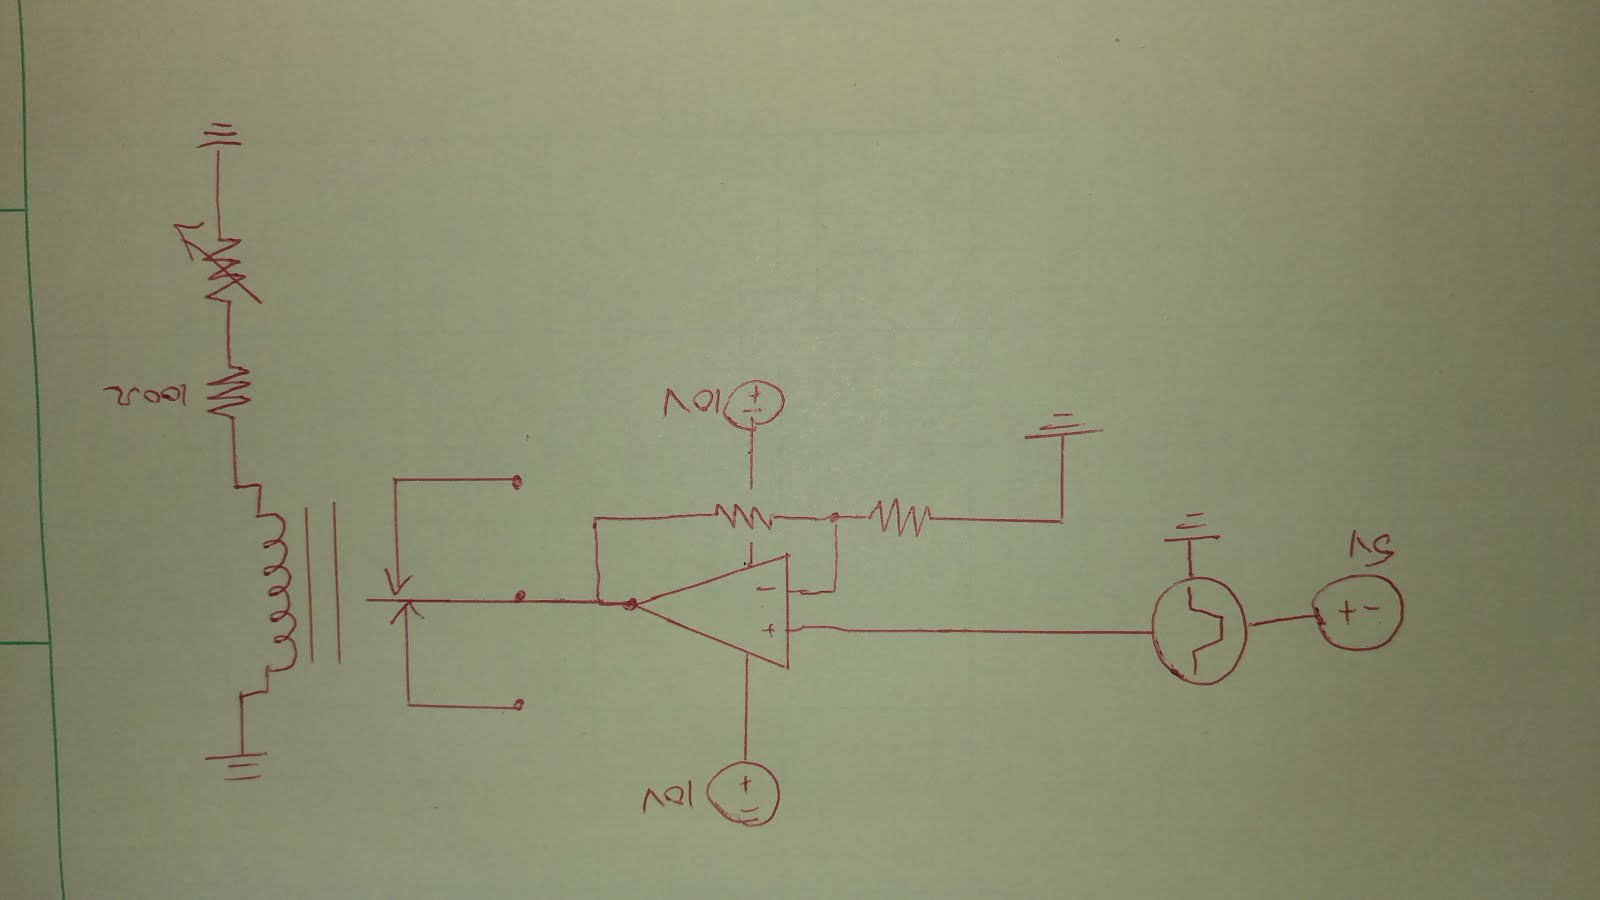 Week 6 Egr Circuit Lab Blog Circuitlab Voltage Controlled Switch Off State Resistance 01